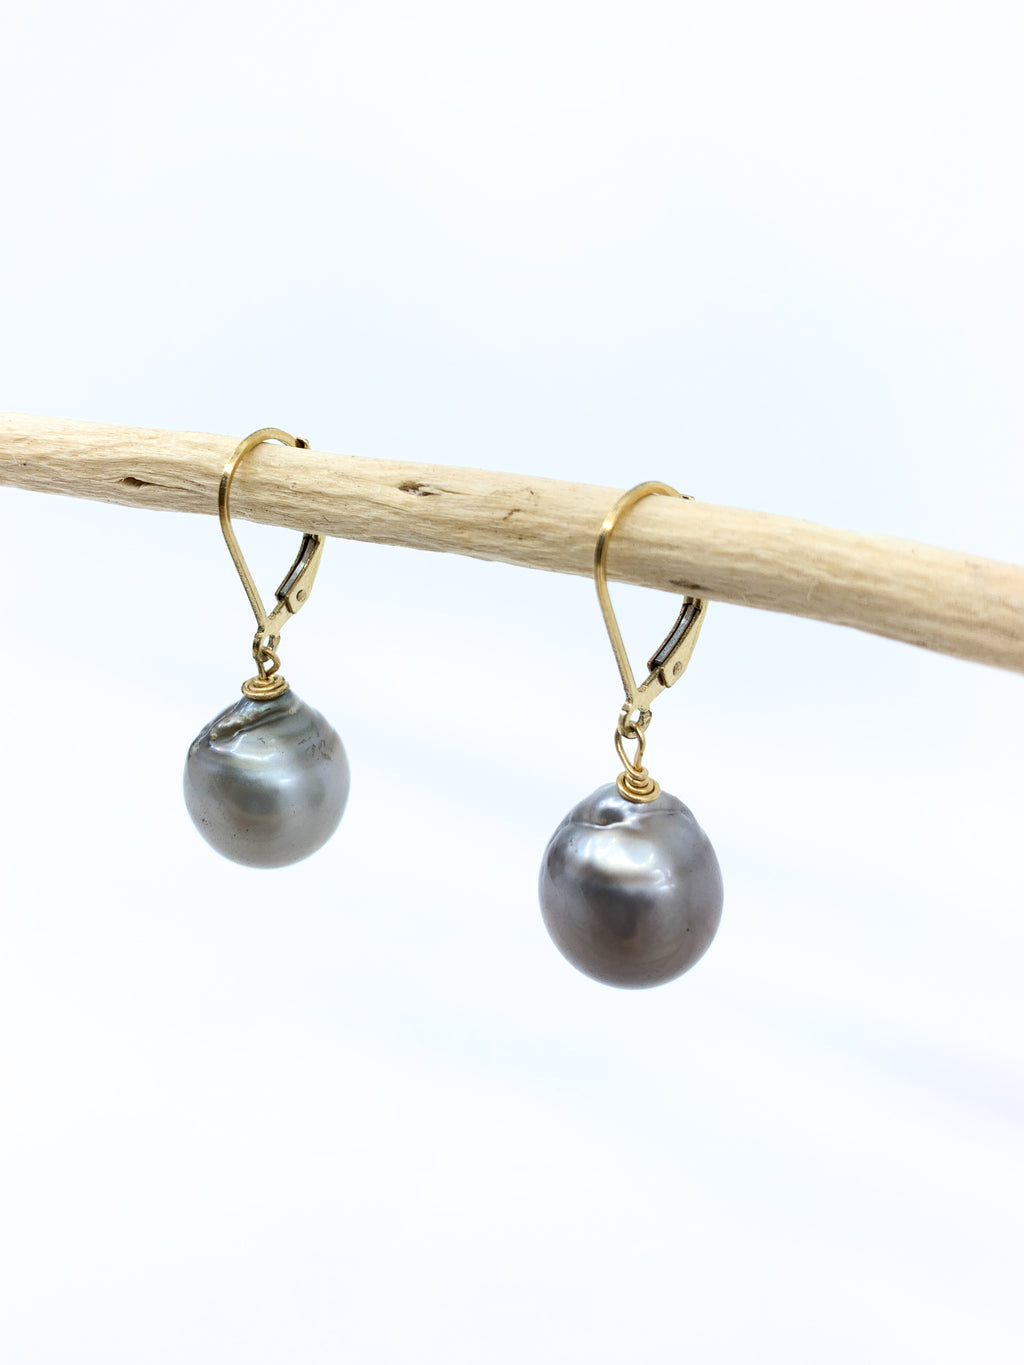 large tahitian pearl earrings with safety ear wires by eve black jewelry made in Hawaii